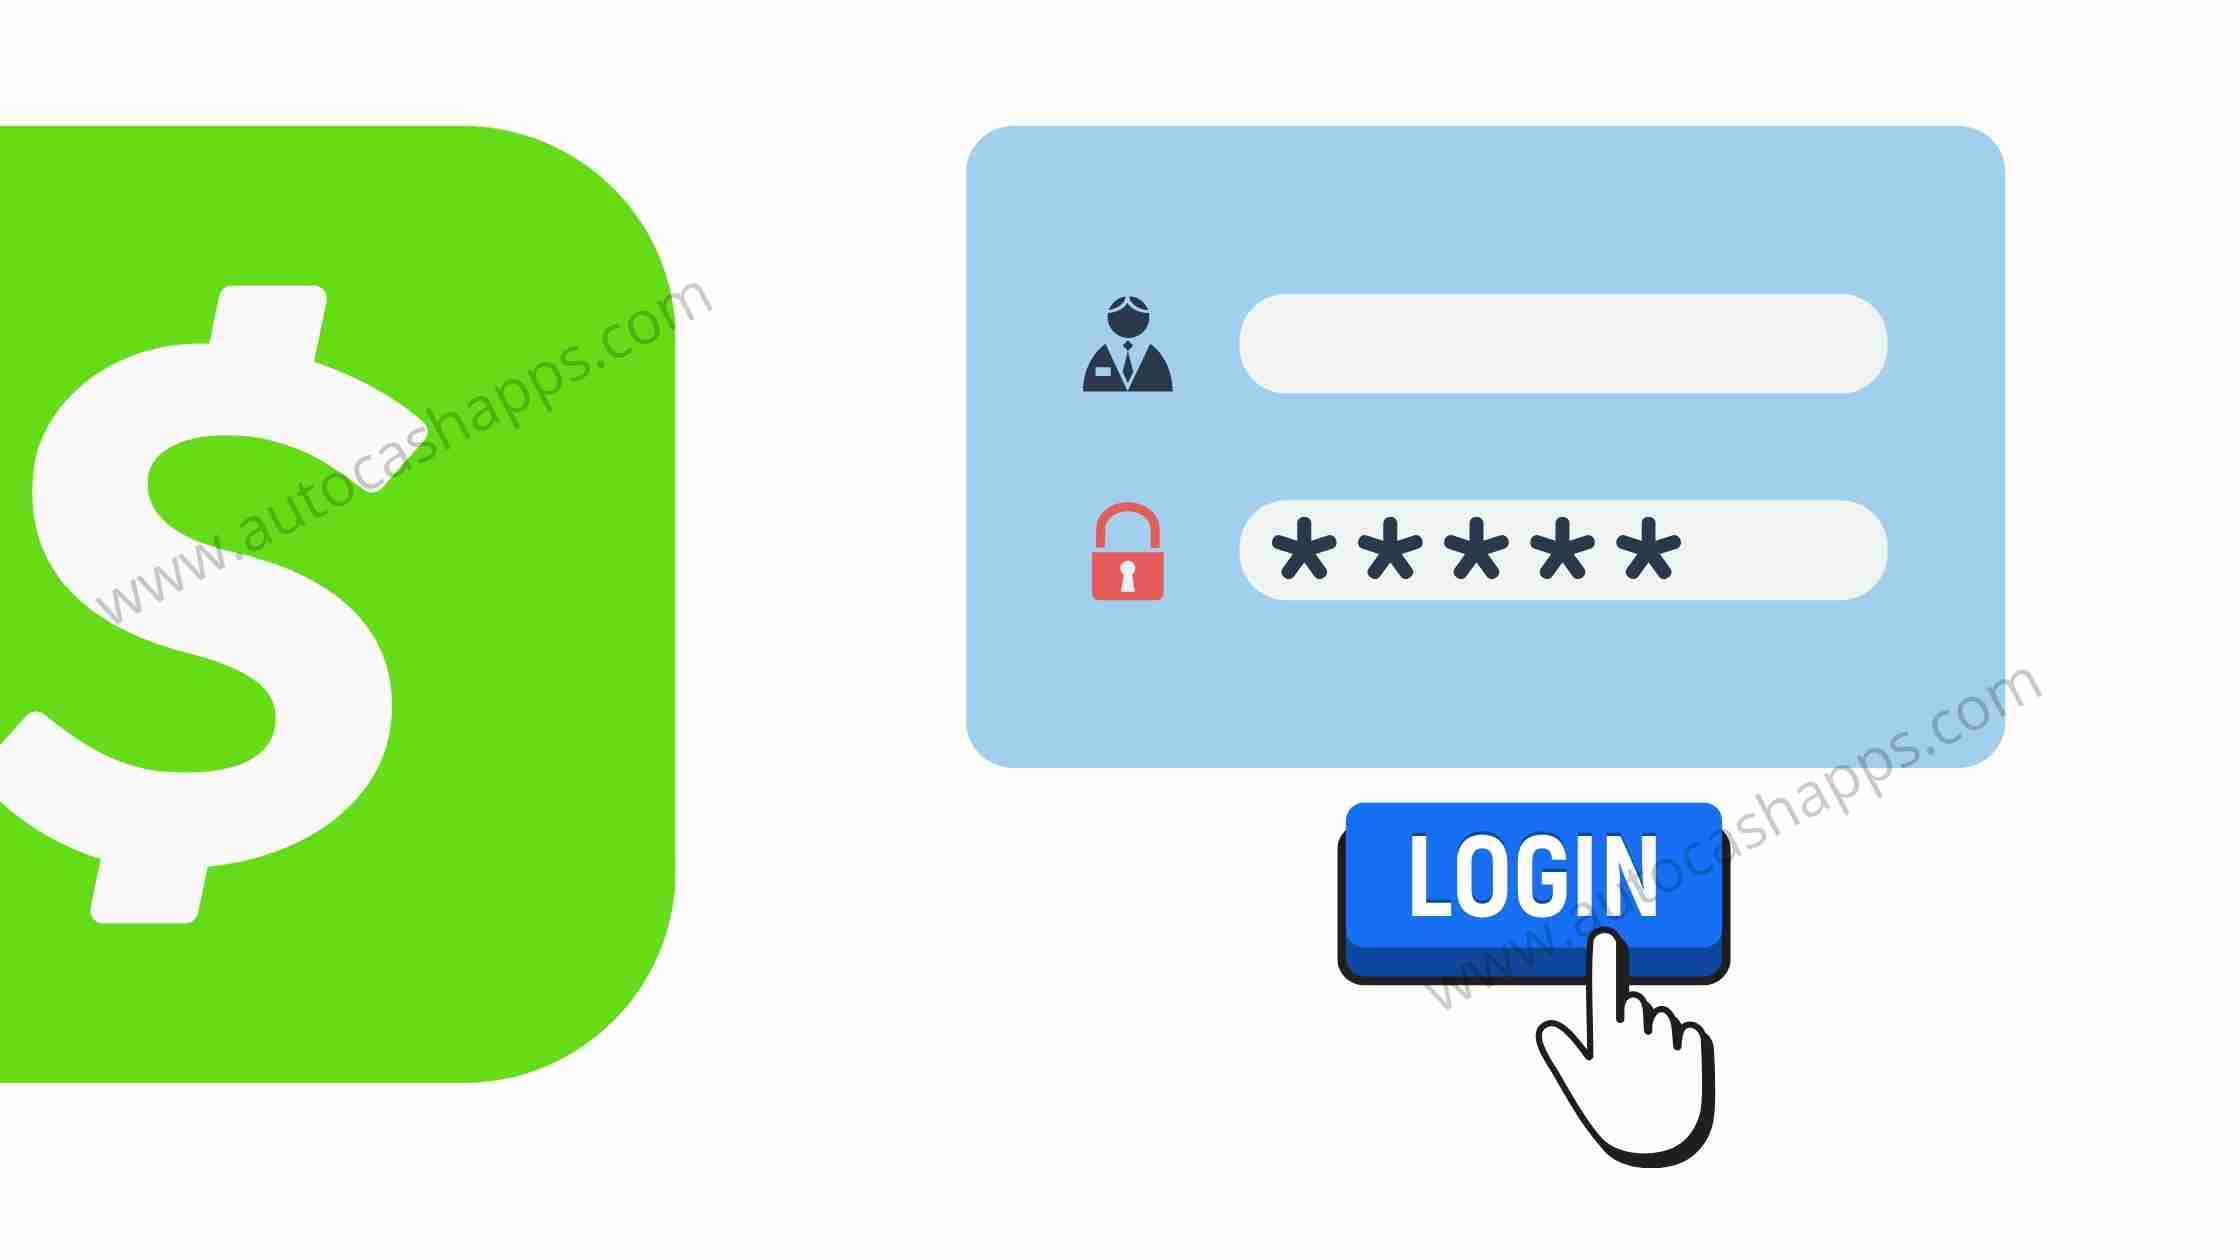 How to login cash app without phone number